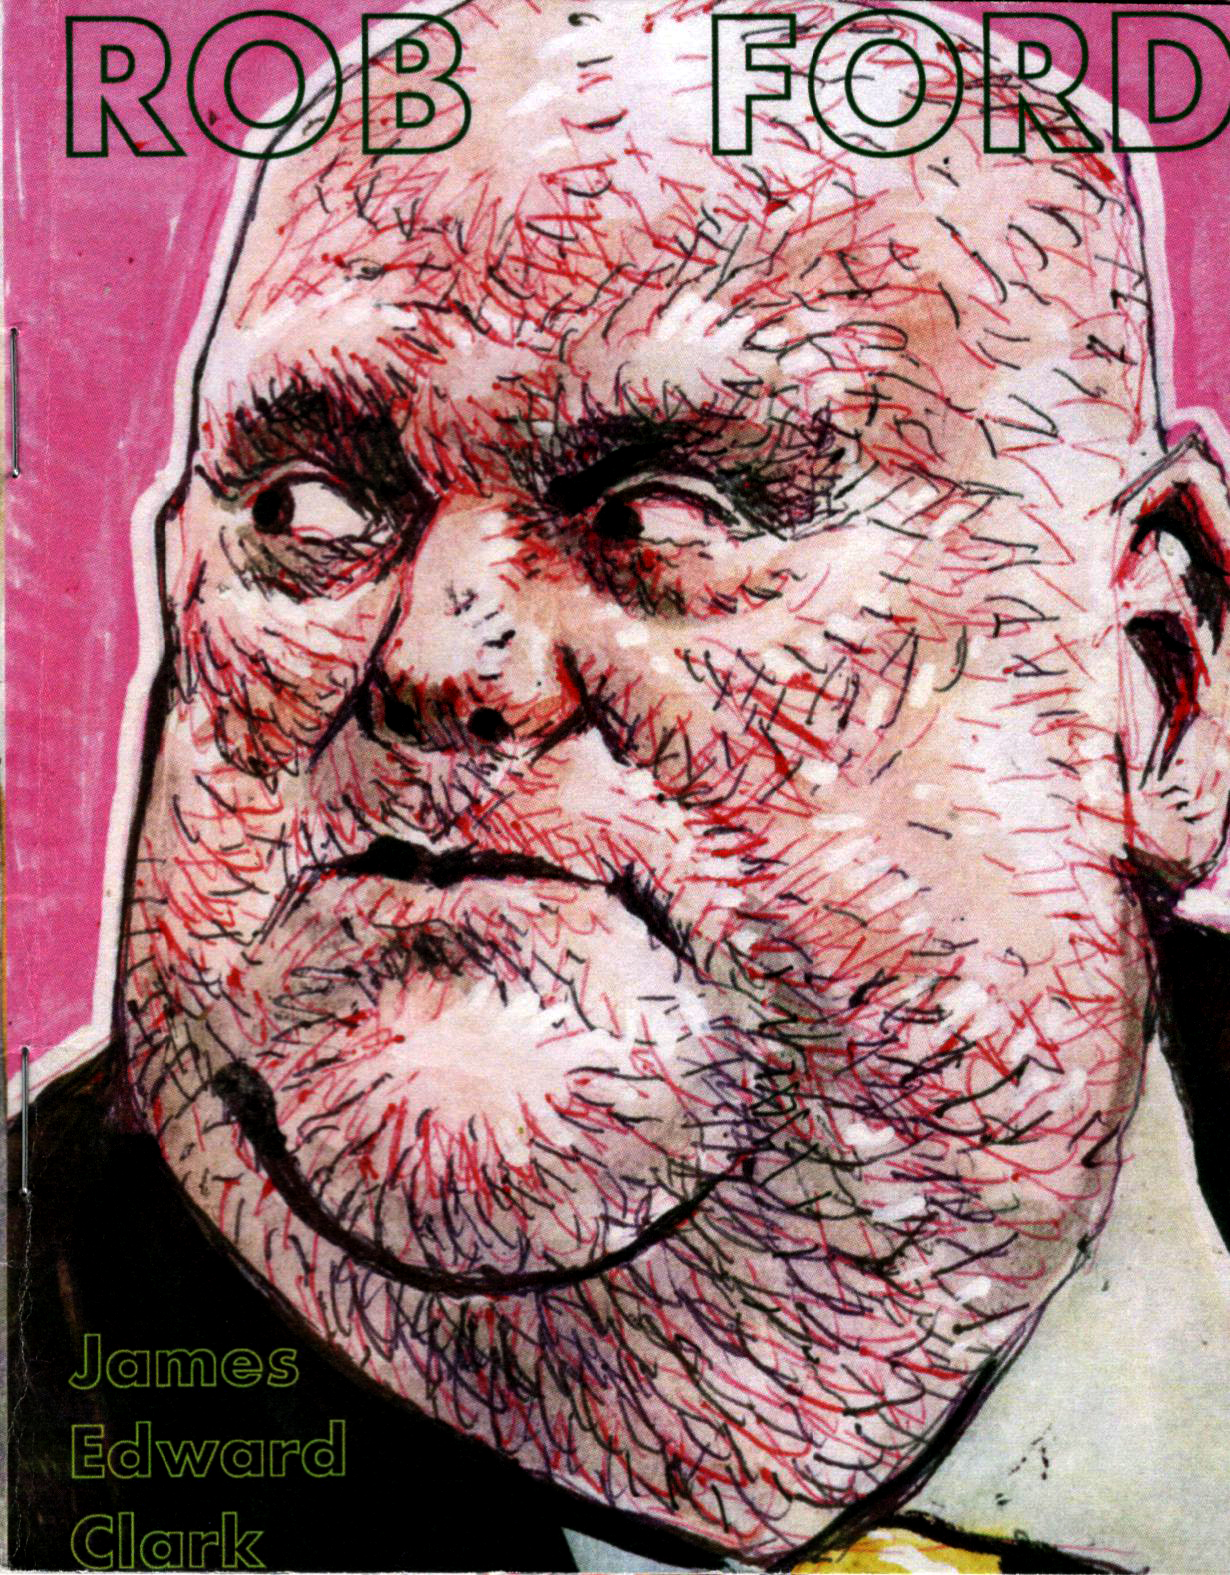 rob-ford-zine-cover